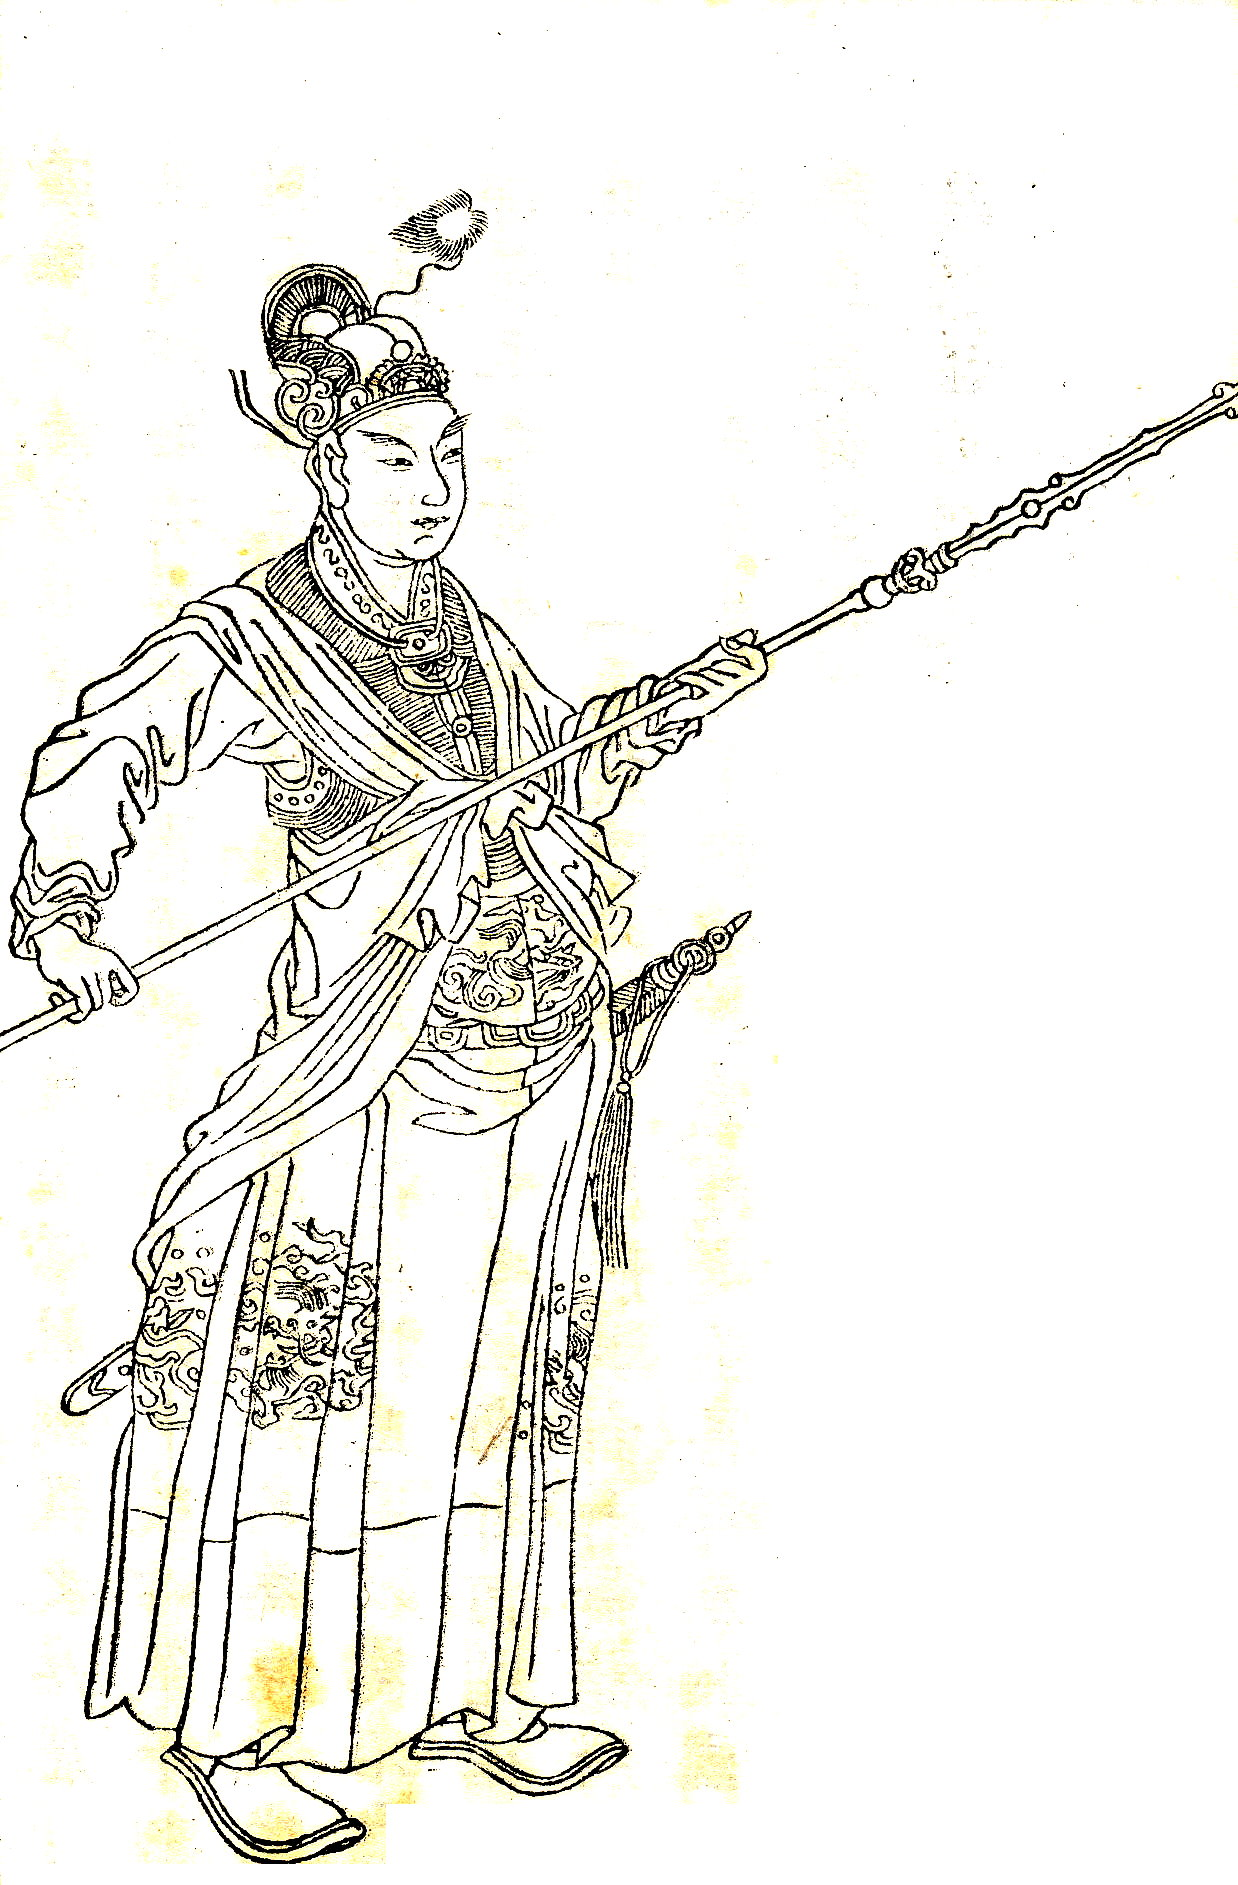 Han Xin (韓信) was a soldier of an obscure background. Born in eastern China, he was so poor during his youth that he could not afford to have a proper funeral for his mother when she died. (Image: wikimedia / CC0 1.0)